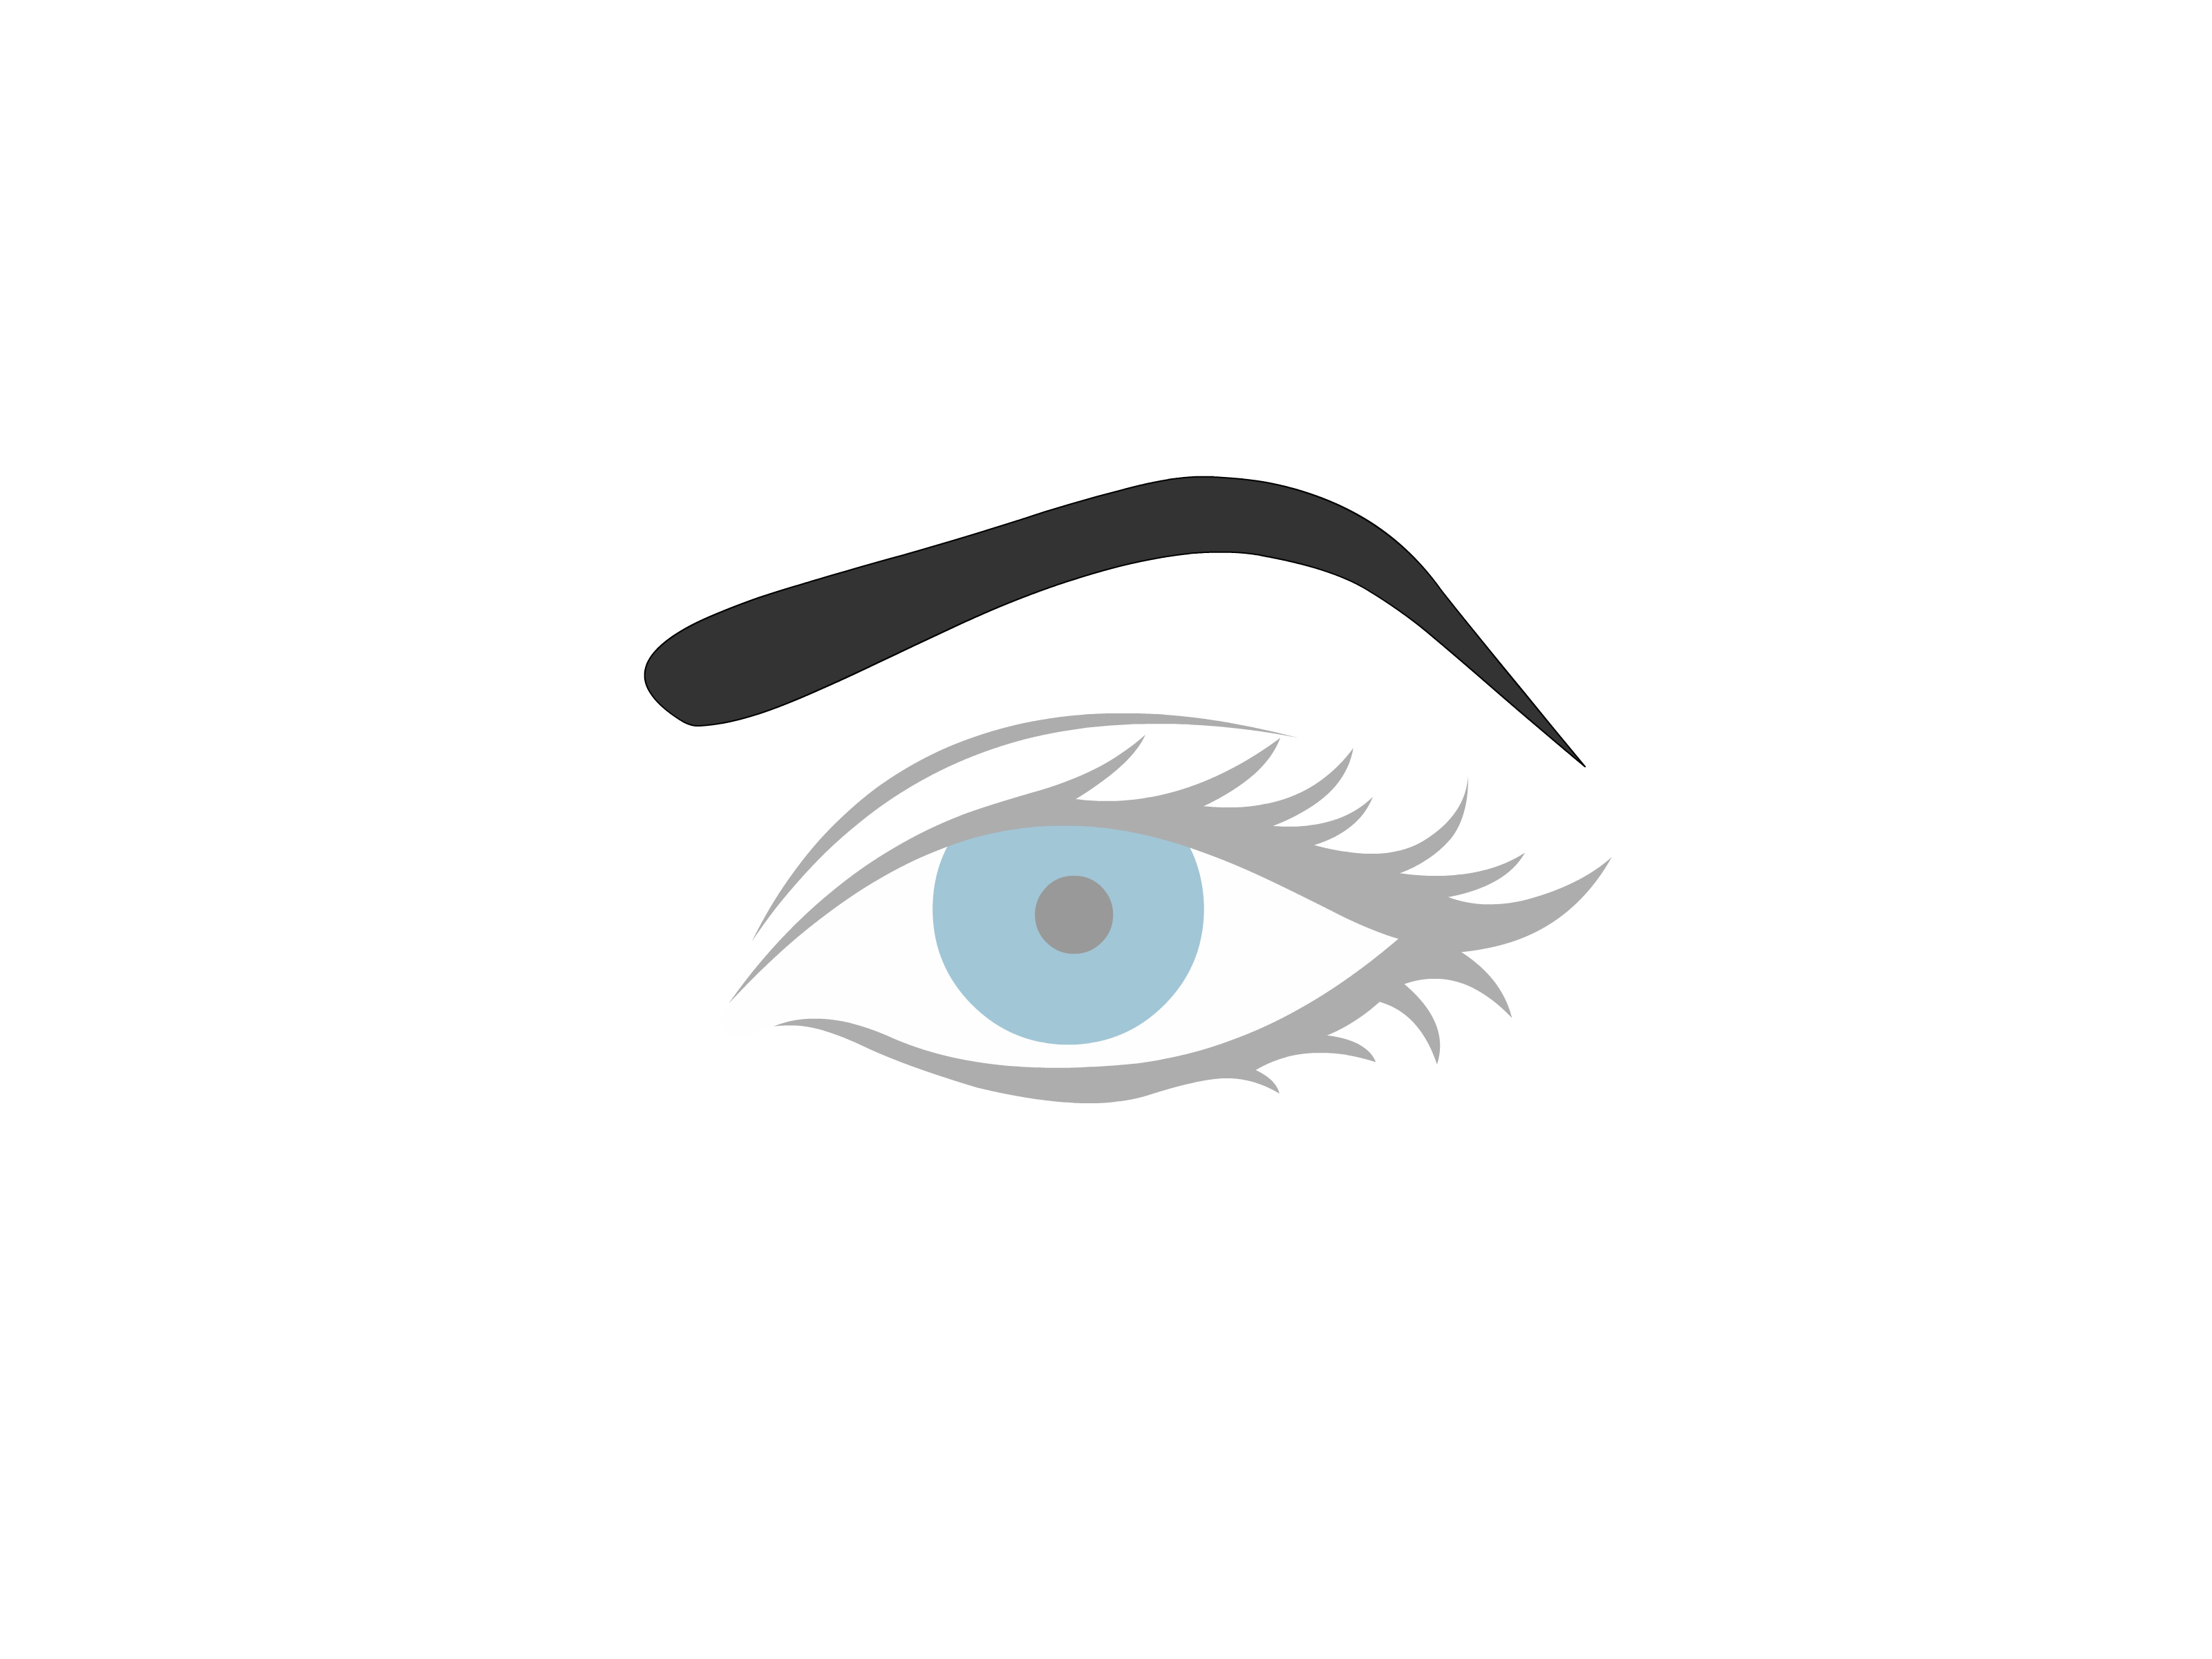 3200x2400 How To Draw An Eyebrow Steps